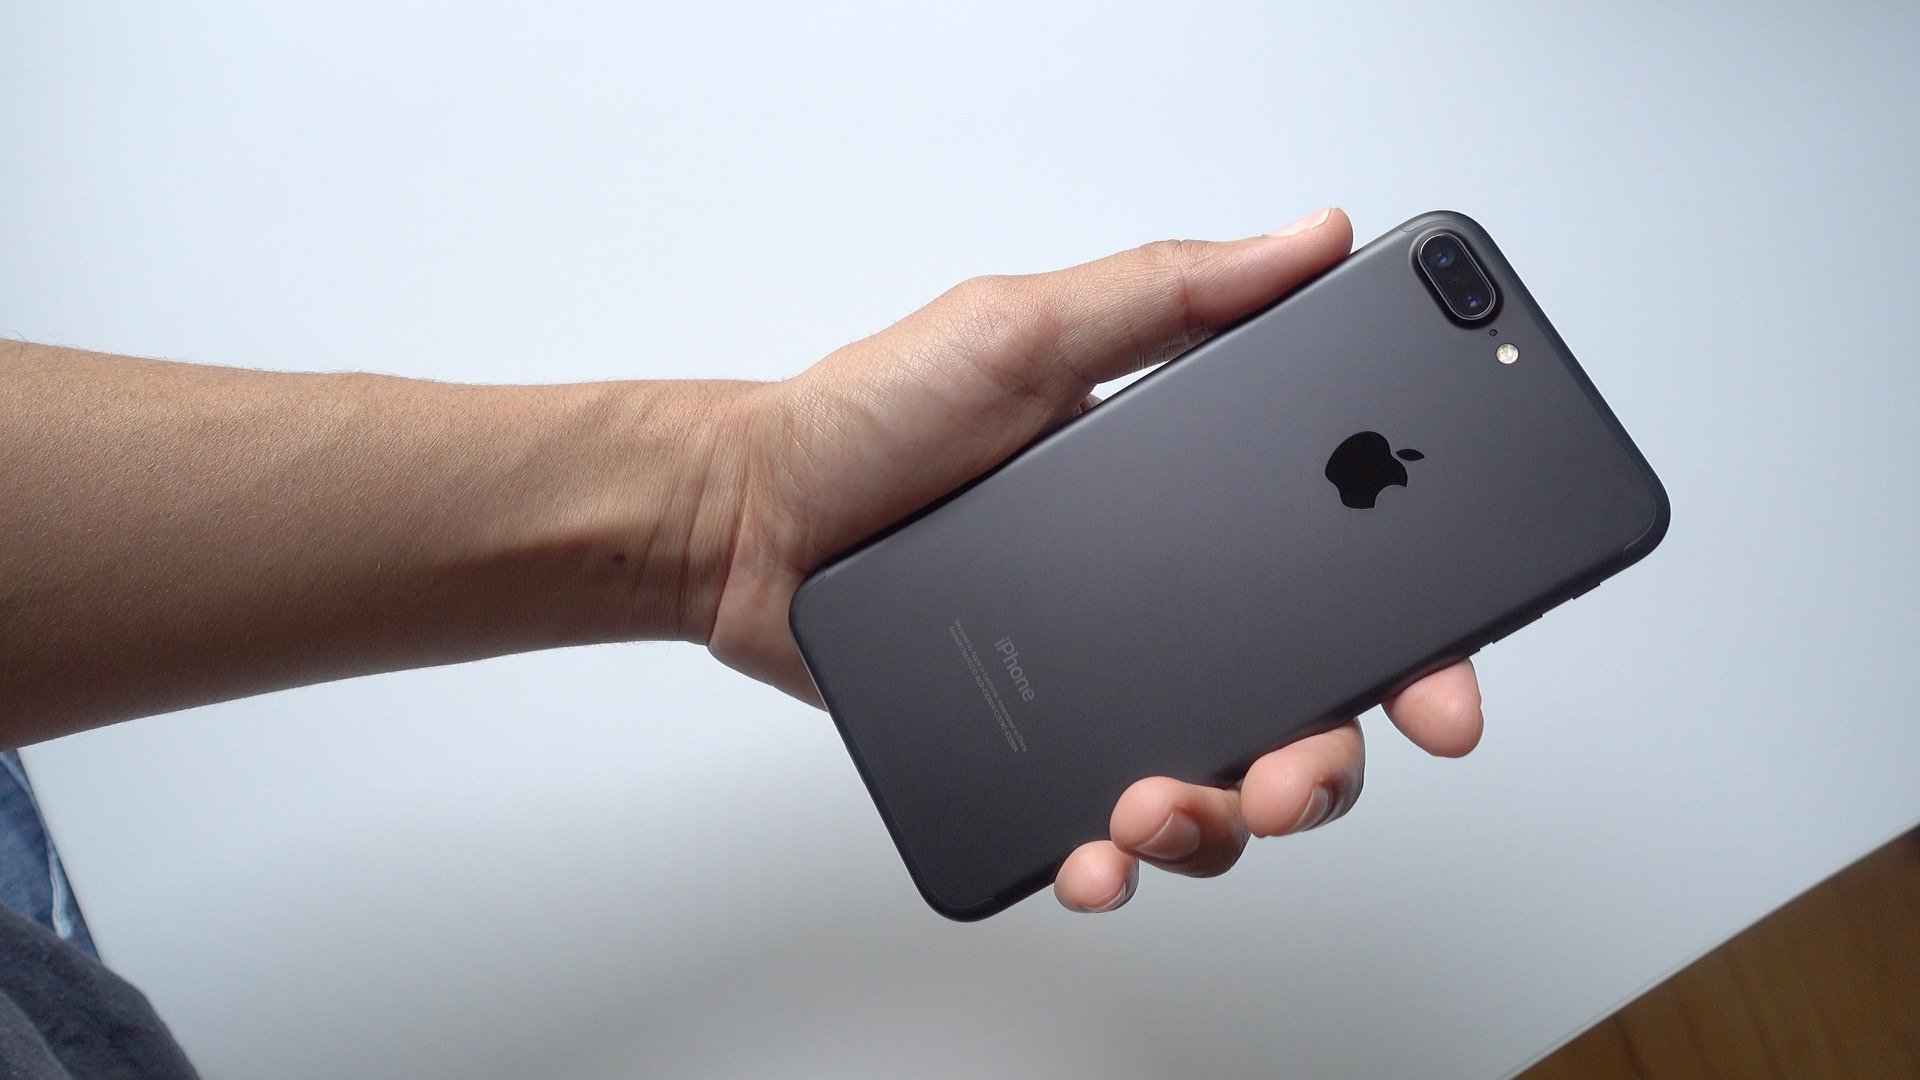 What s the best iPhone 7 to